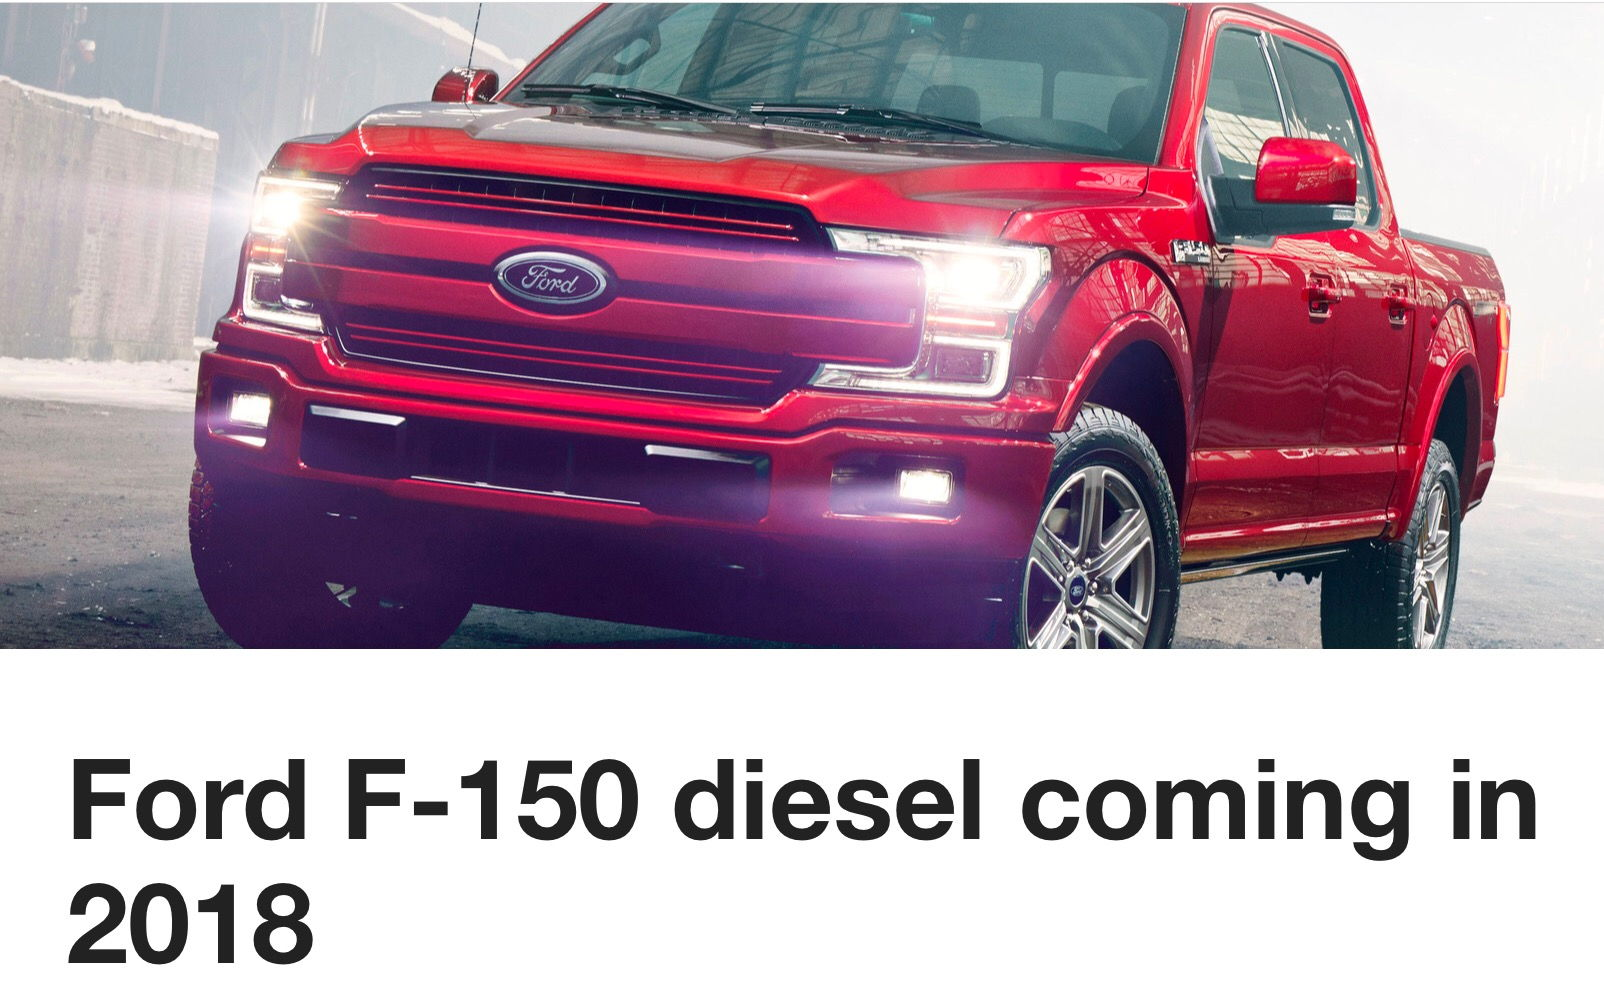 2018 ford f150 diesel just announced ford truck enthusiasts forums. Black Bedroom Furniture Sets. Home Design Ideas